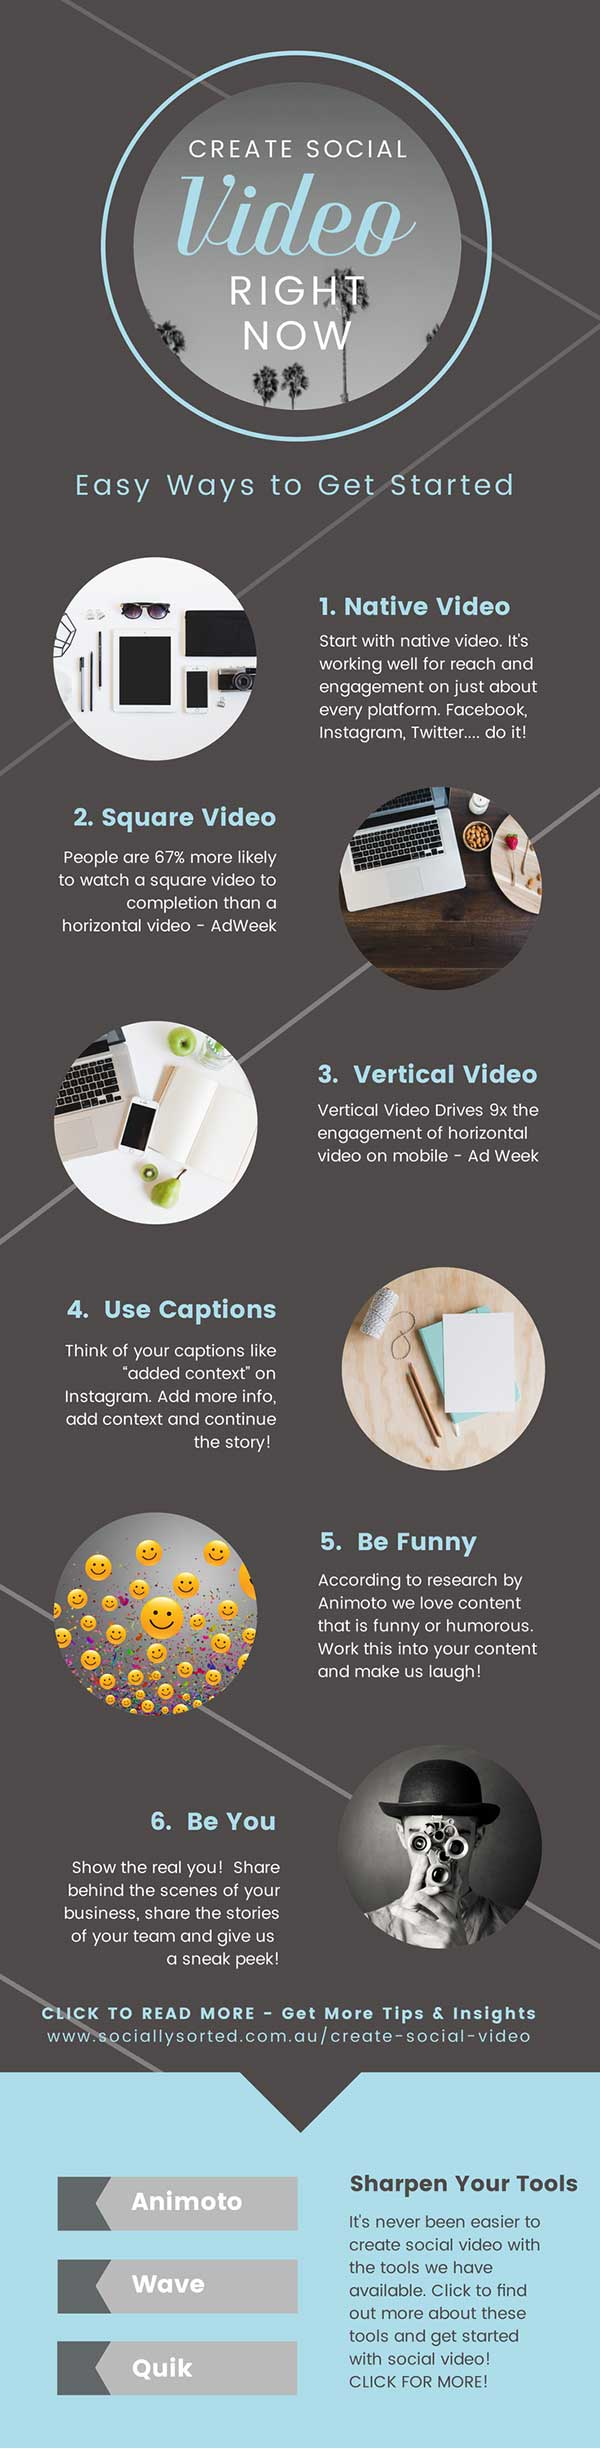 Easy Ways to Create Social Video